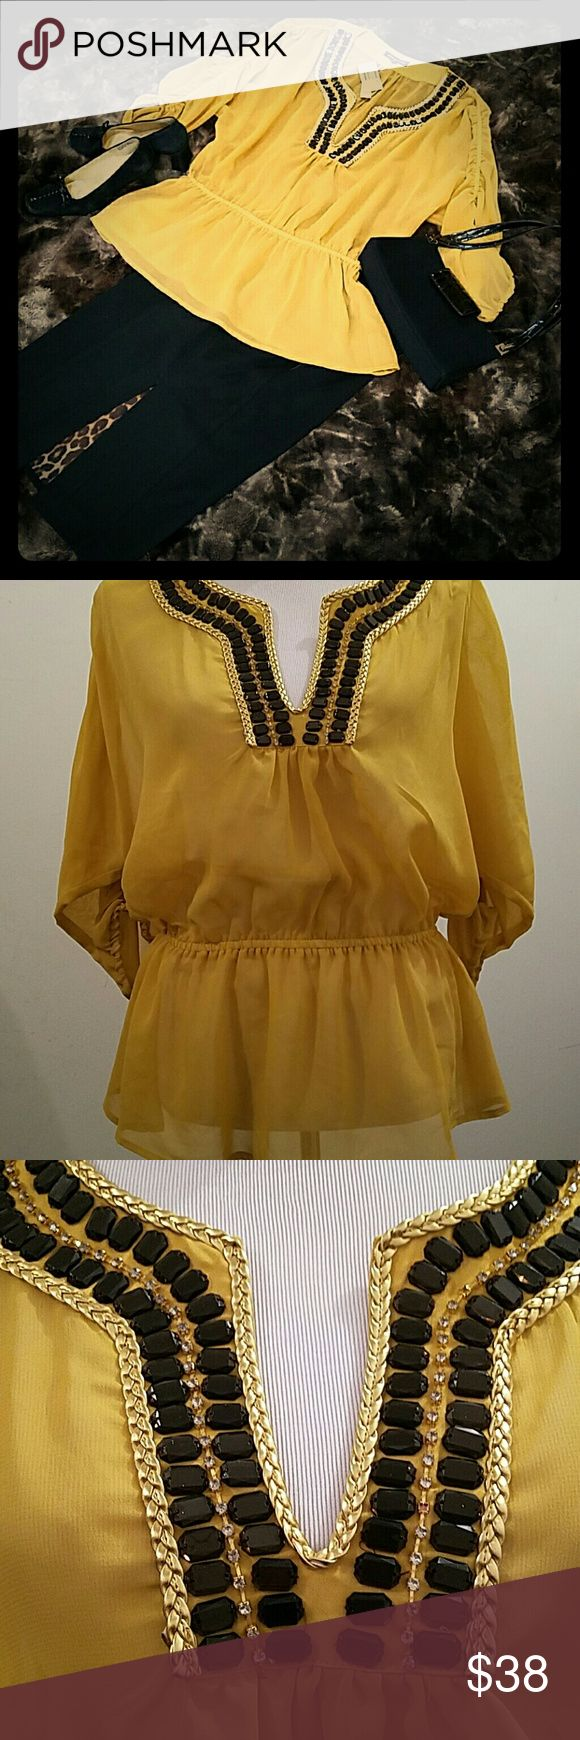 NWT Adrienne Vittadini yellow sheer top NWT Adrienne Vittadini yellow sheer top can be worn over a camisole, bralette or tank. Figure flattering as it gathers at the waist. Adrienne Vittadini Tops Blouses